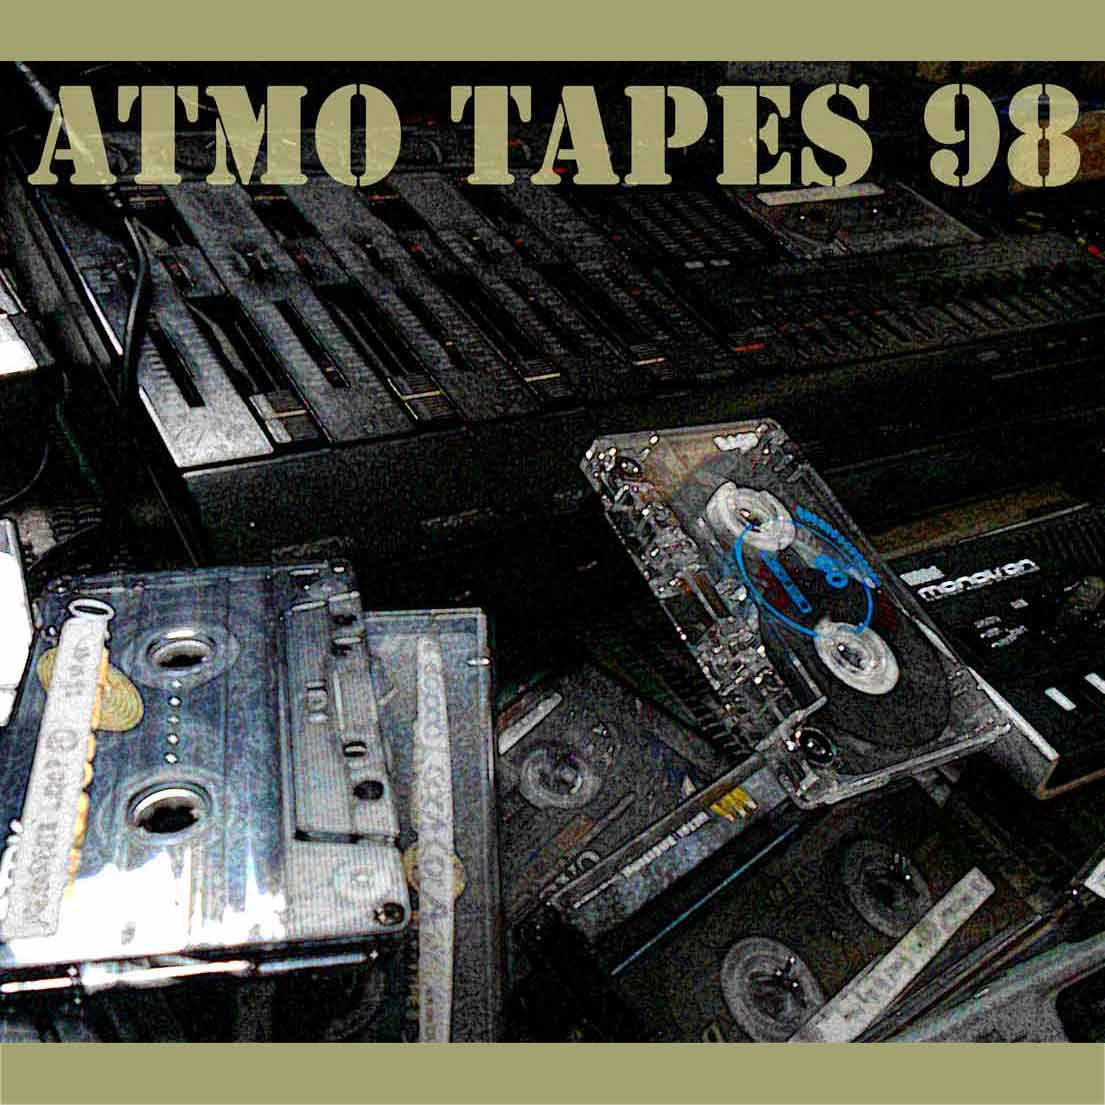 atmotapes98